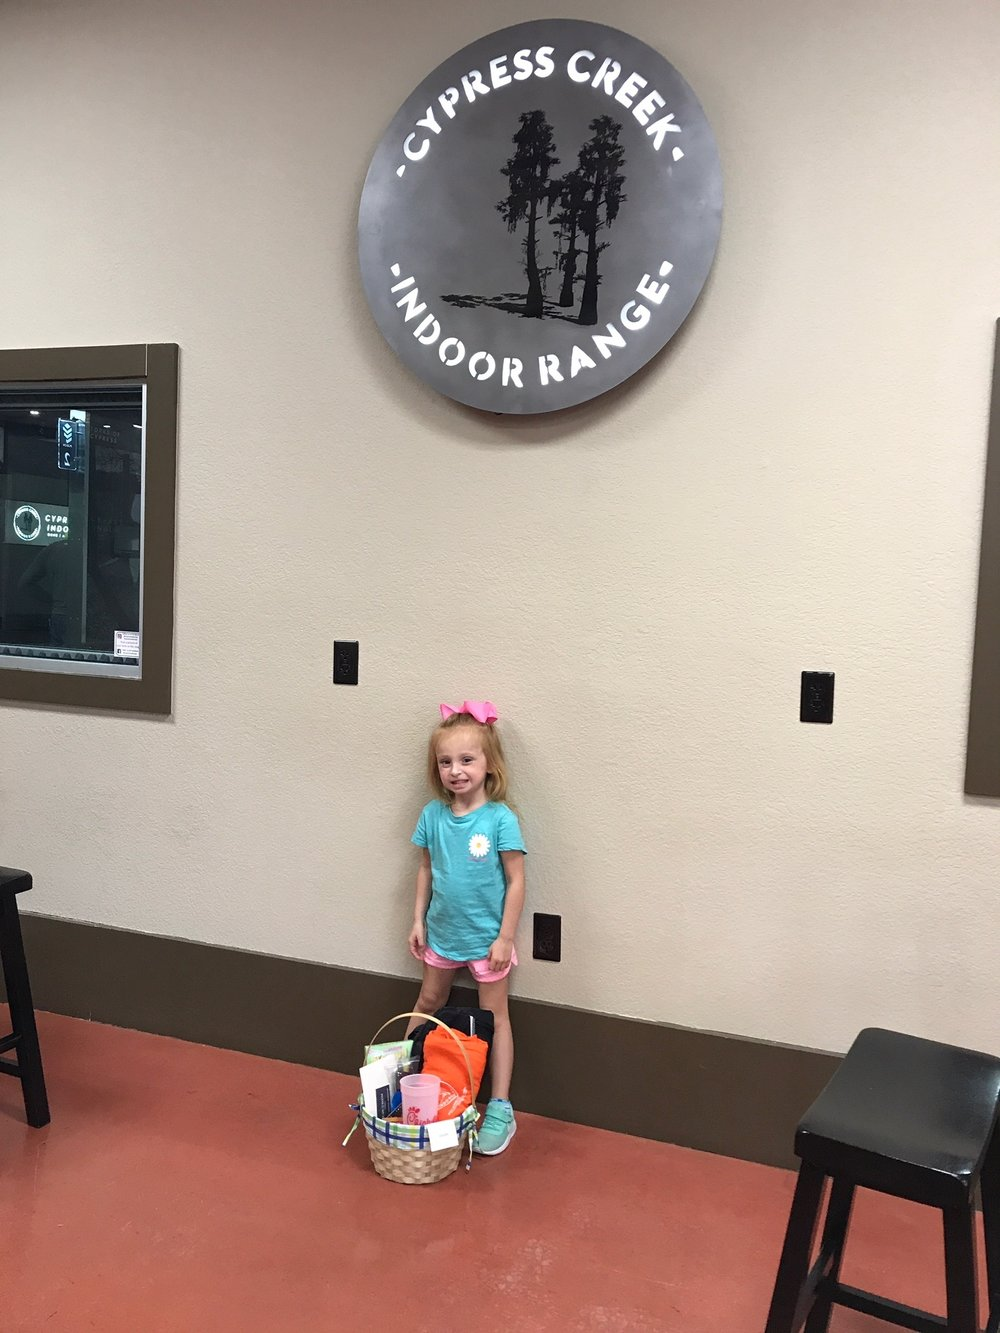 Congratulations to Isabel Hester. She found Egg #4!